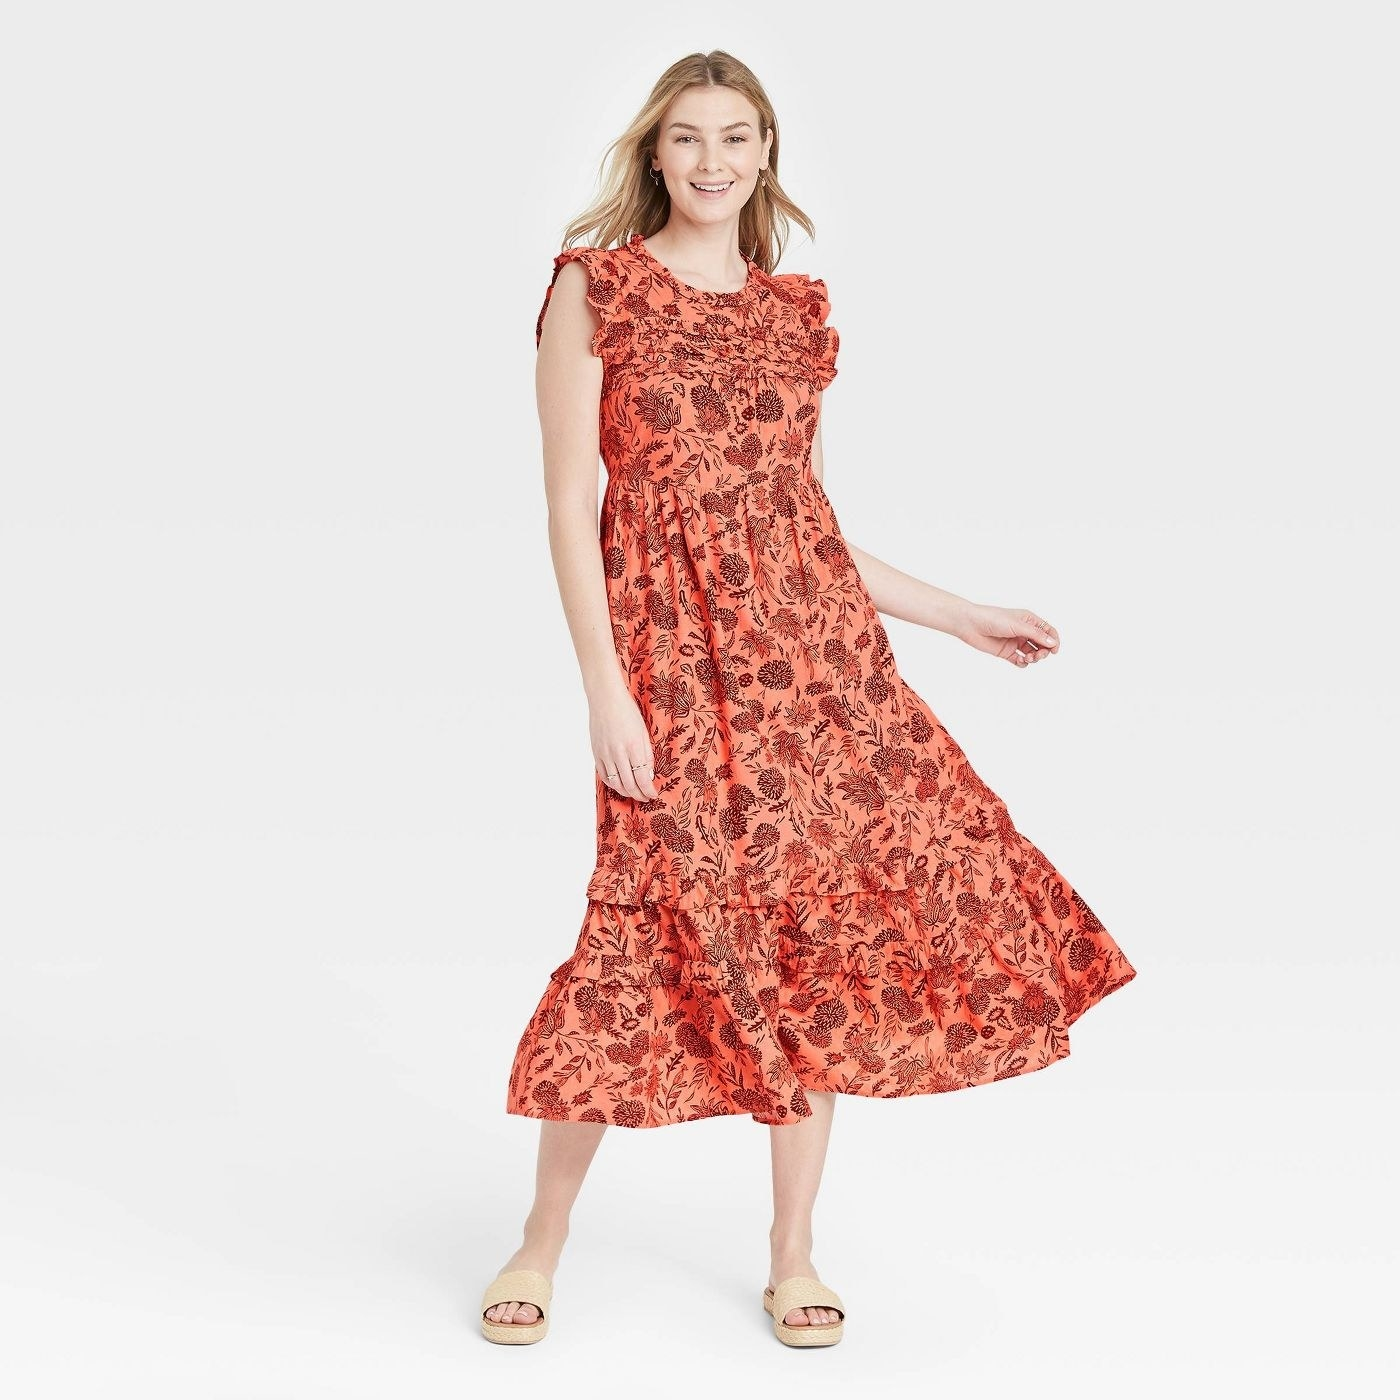 Model wearing orange dress with rust colored floral print